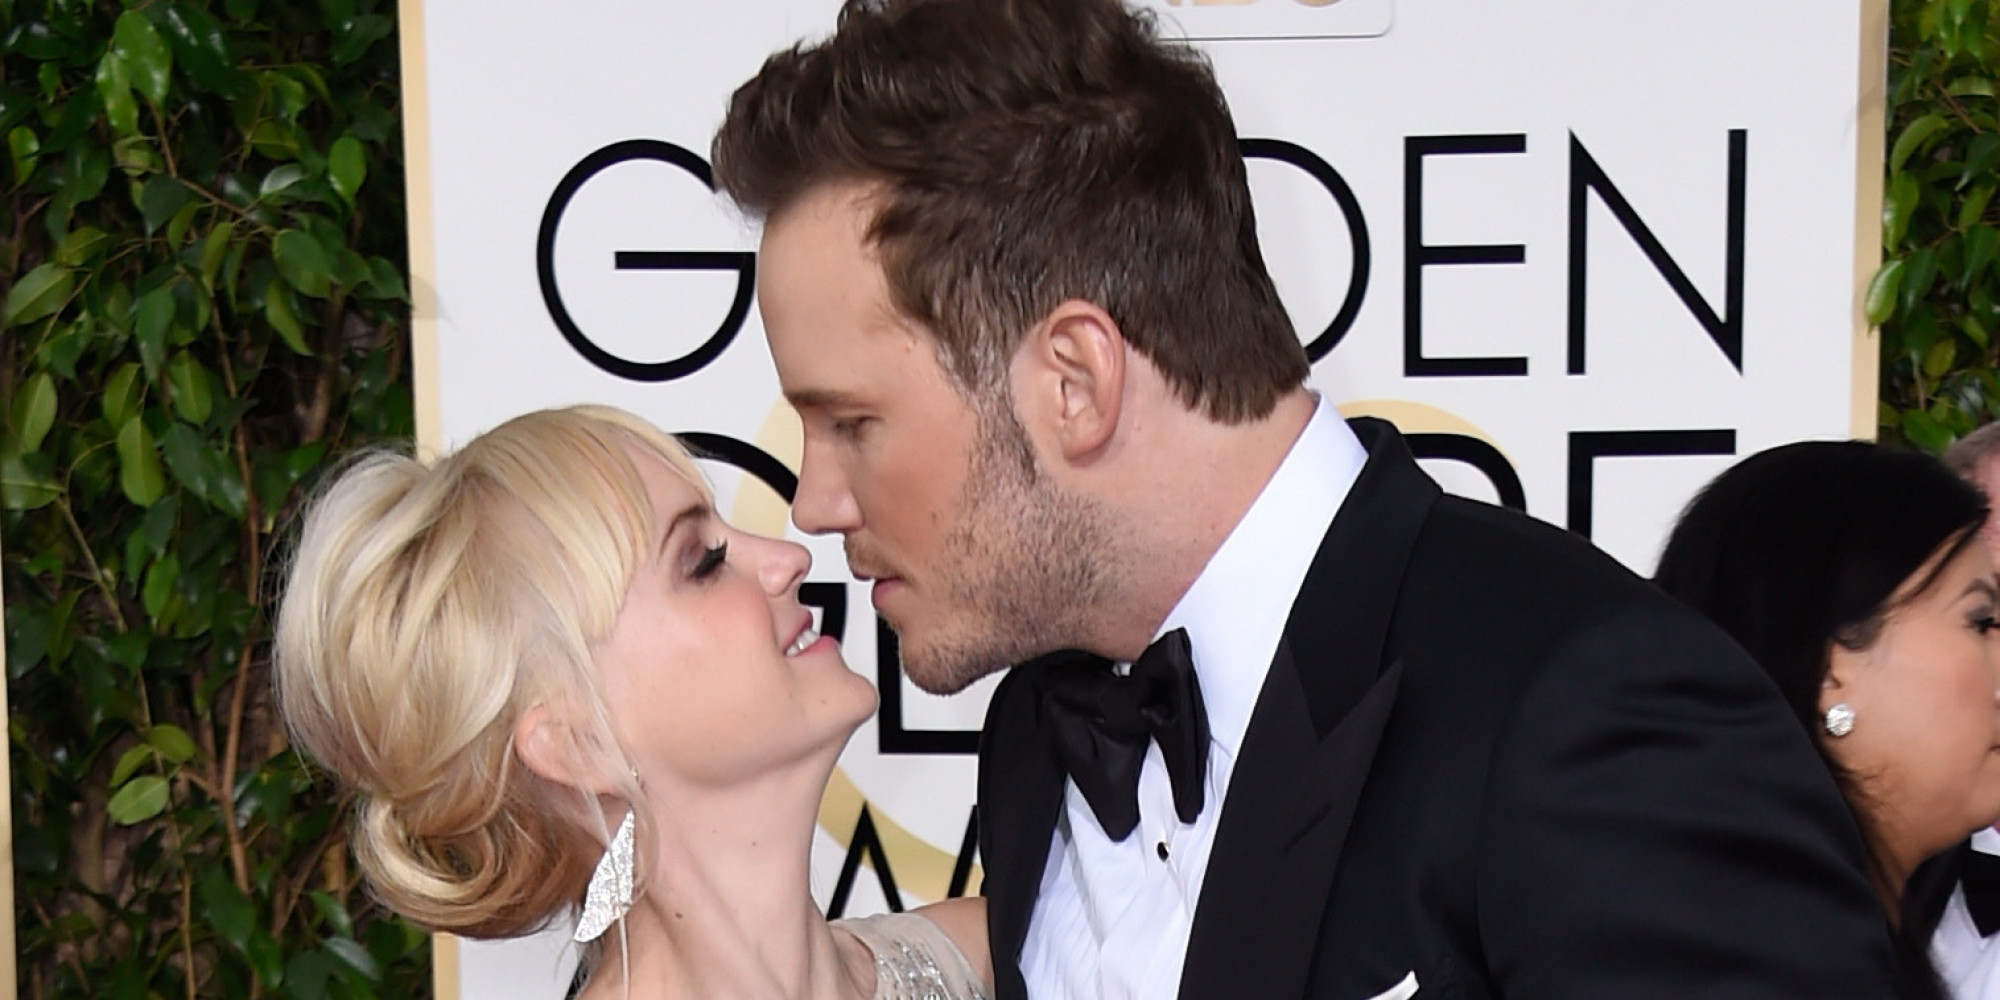 BEVERLY HILLS, CA - JANUARY 11:  Actors Anna Faris and Chris Pratt attend the 72nd Annual Golden Globe Awards at The Beverly Hilton Hotel on January 11, 2015 in Beverly Hills, California.  (Photo by Frazer Harrison/Getty Images)